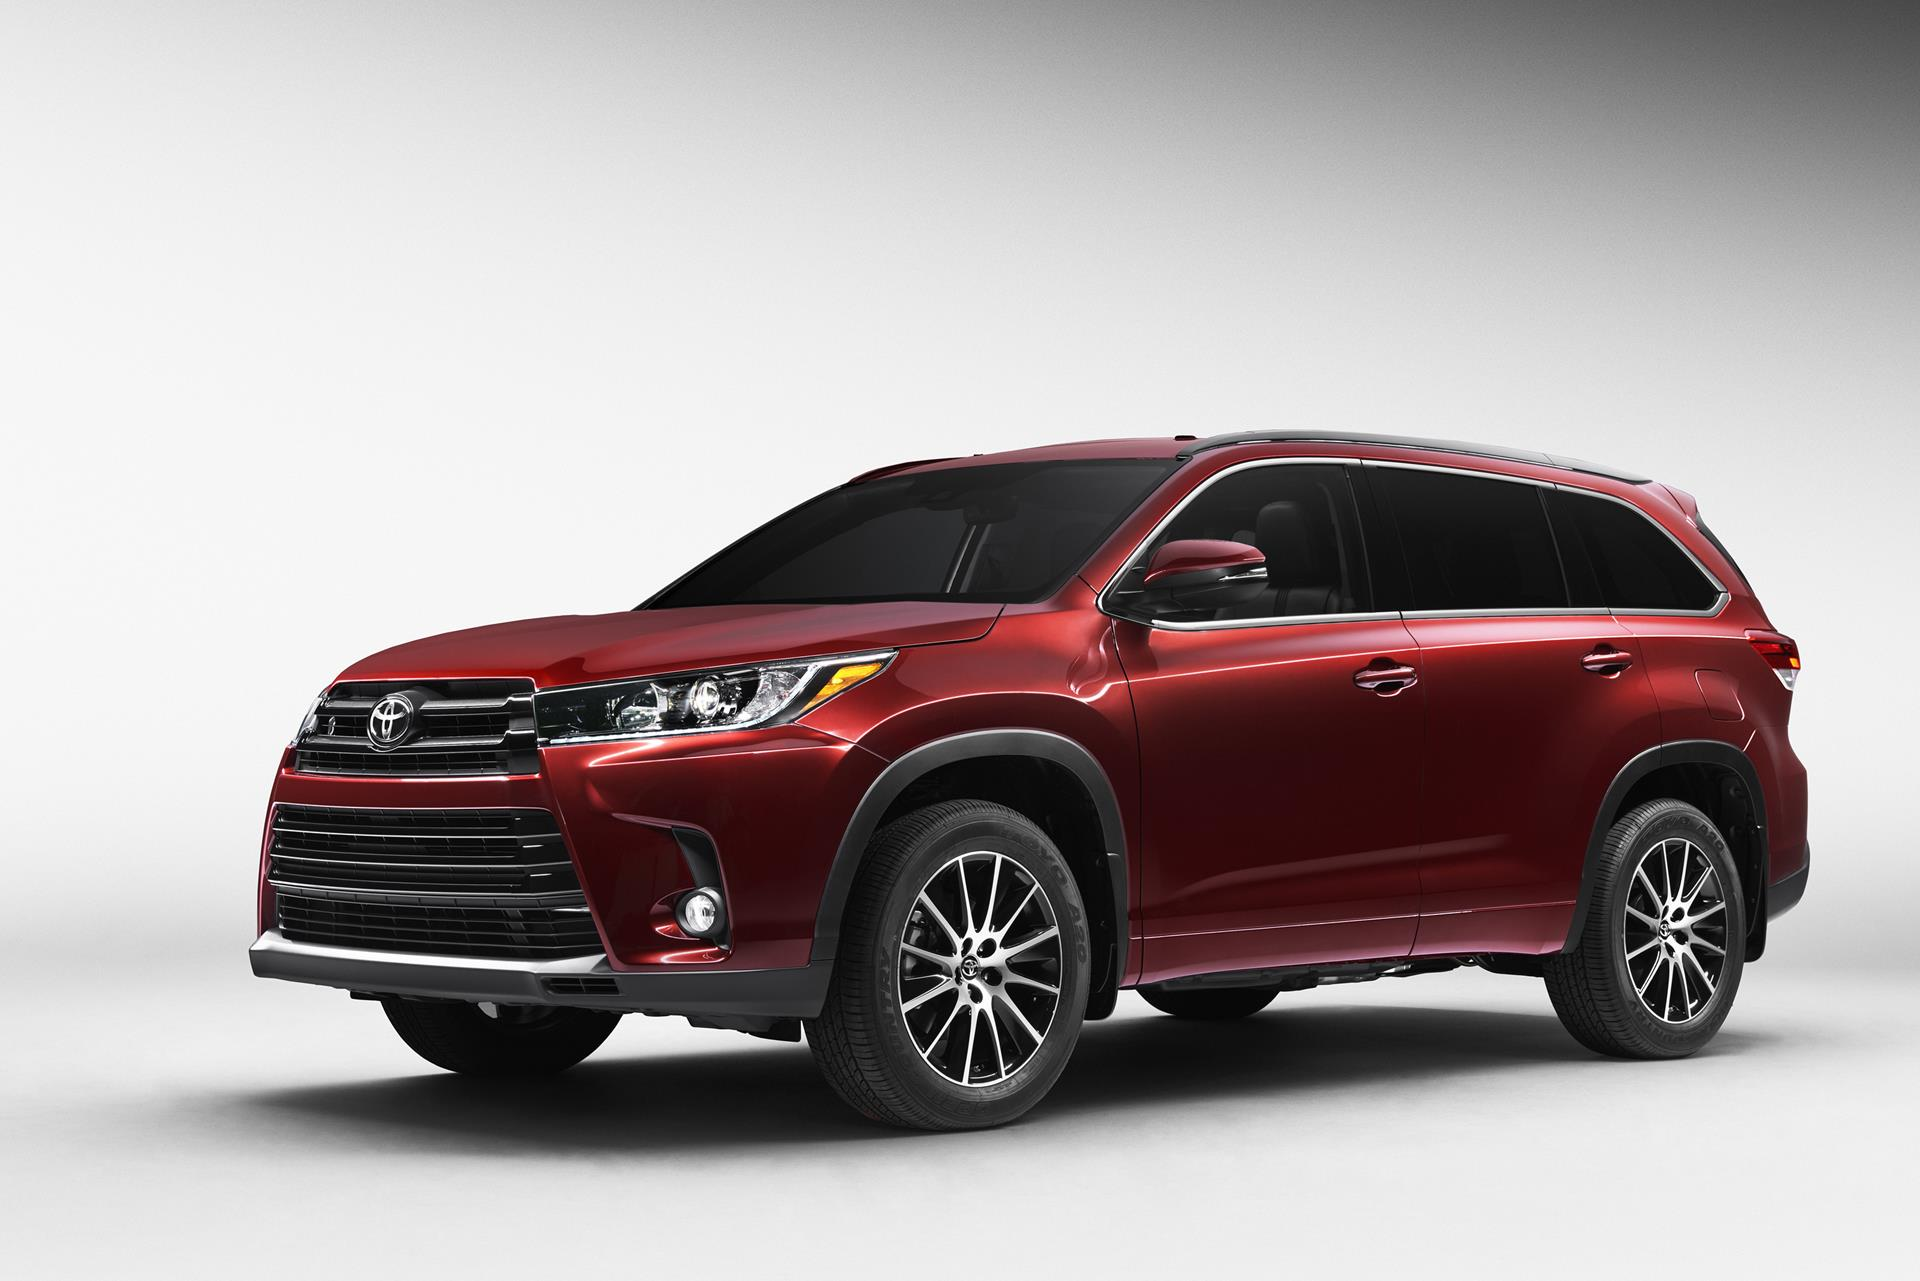 2017 Toyota Highlander Technical And Mechanical Specifications